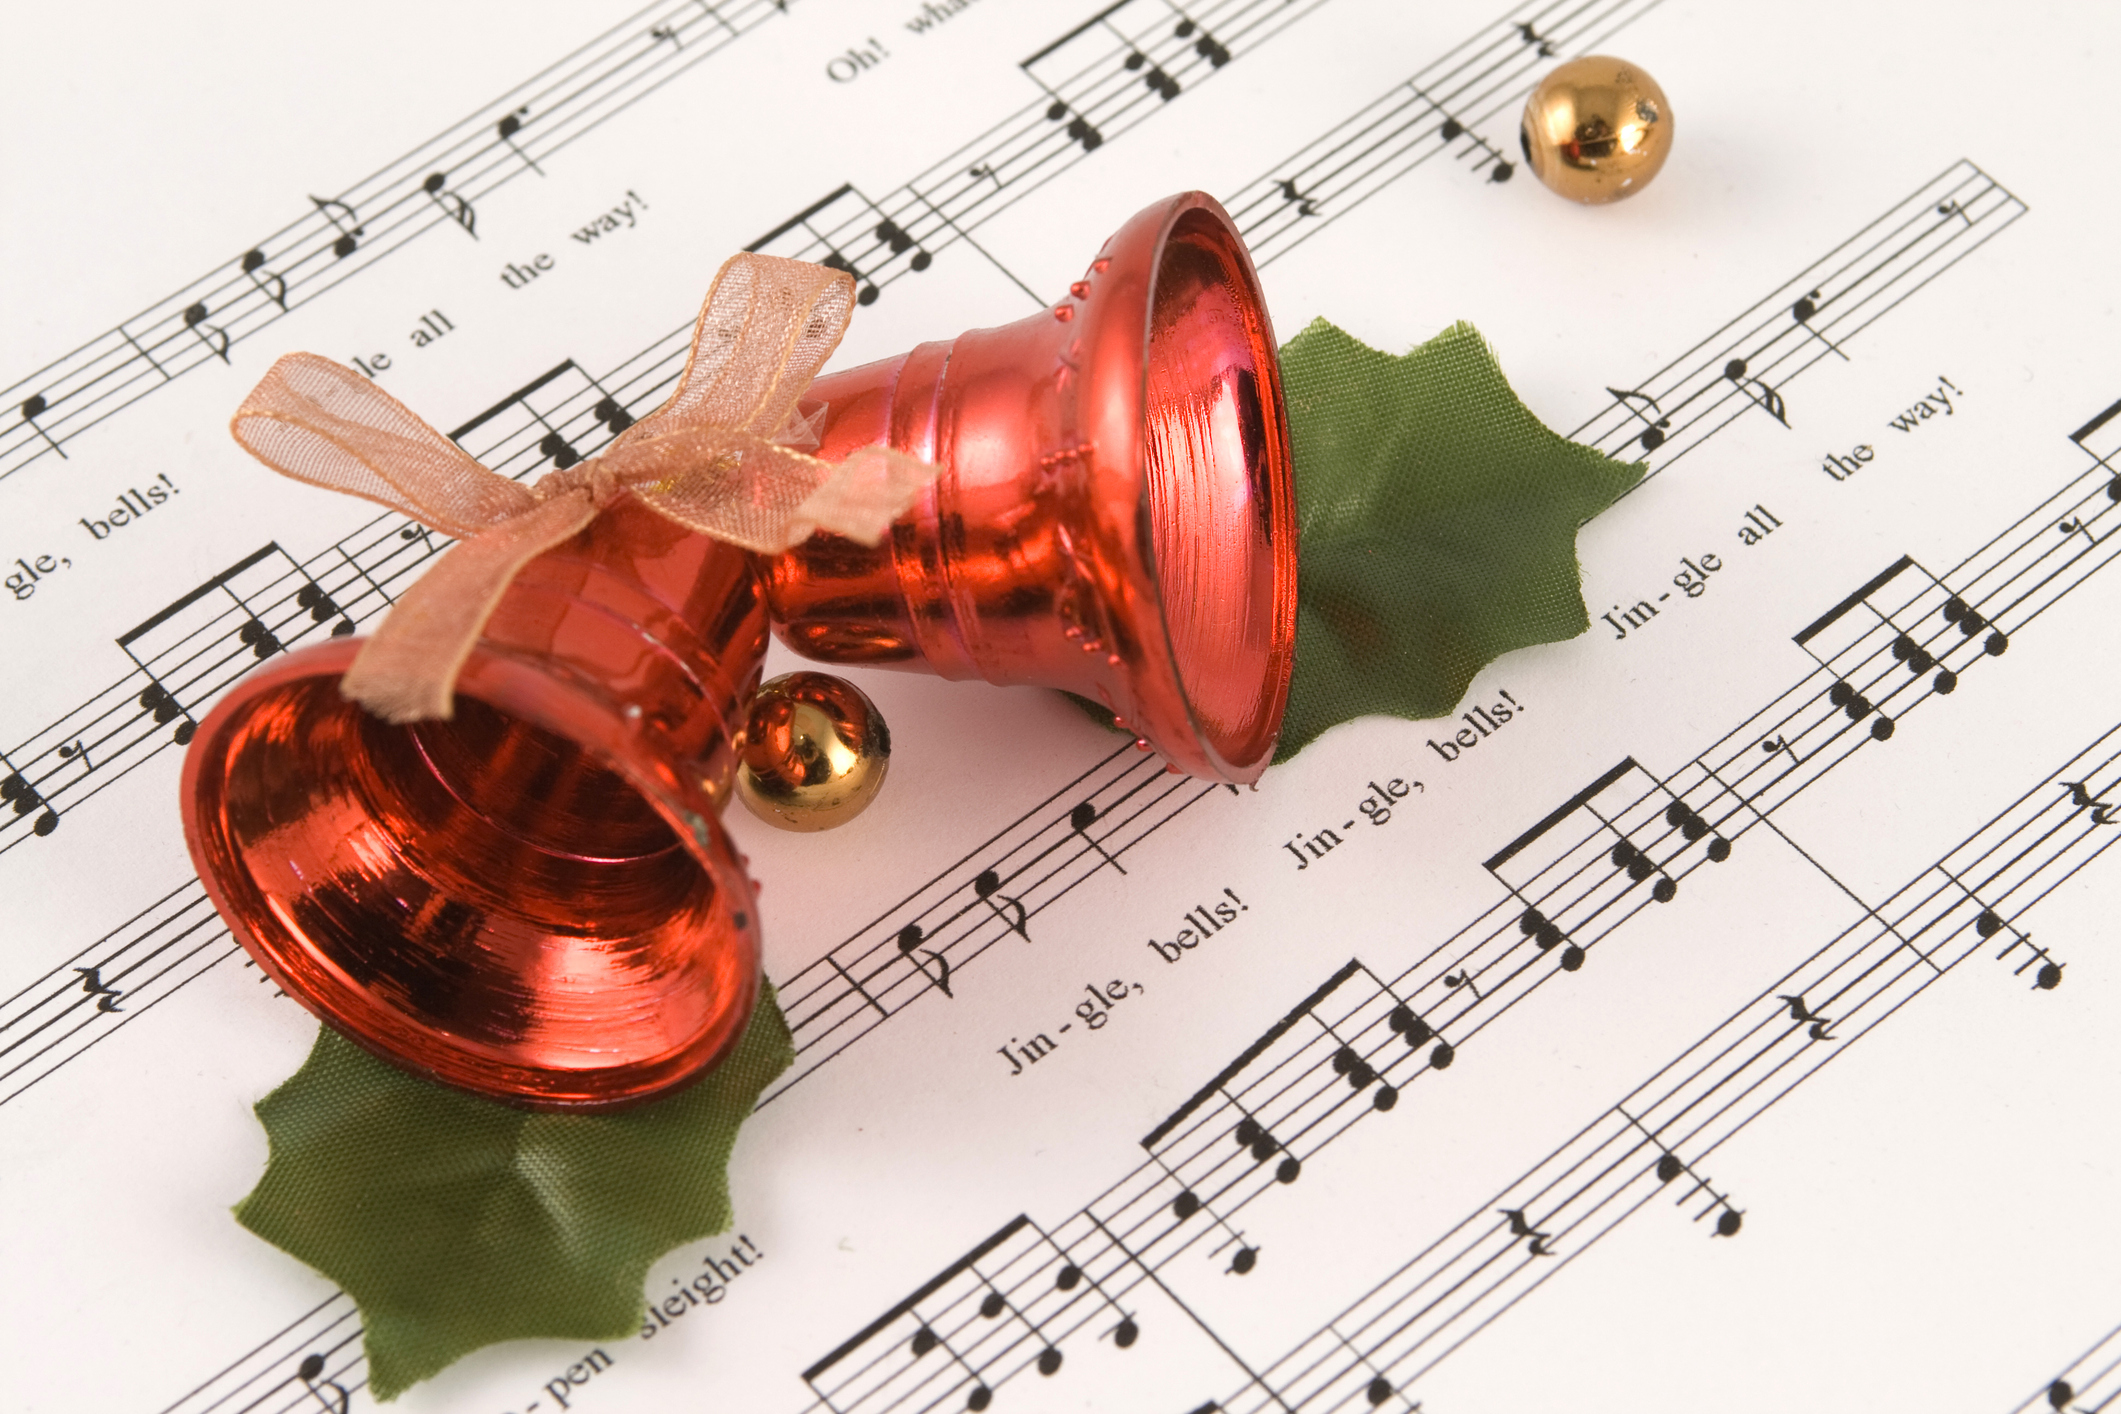 8 Things You May Not Know About Jingle Bells